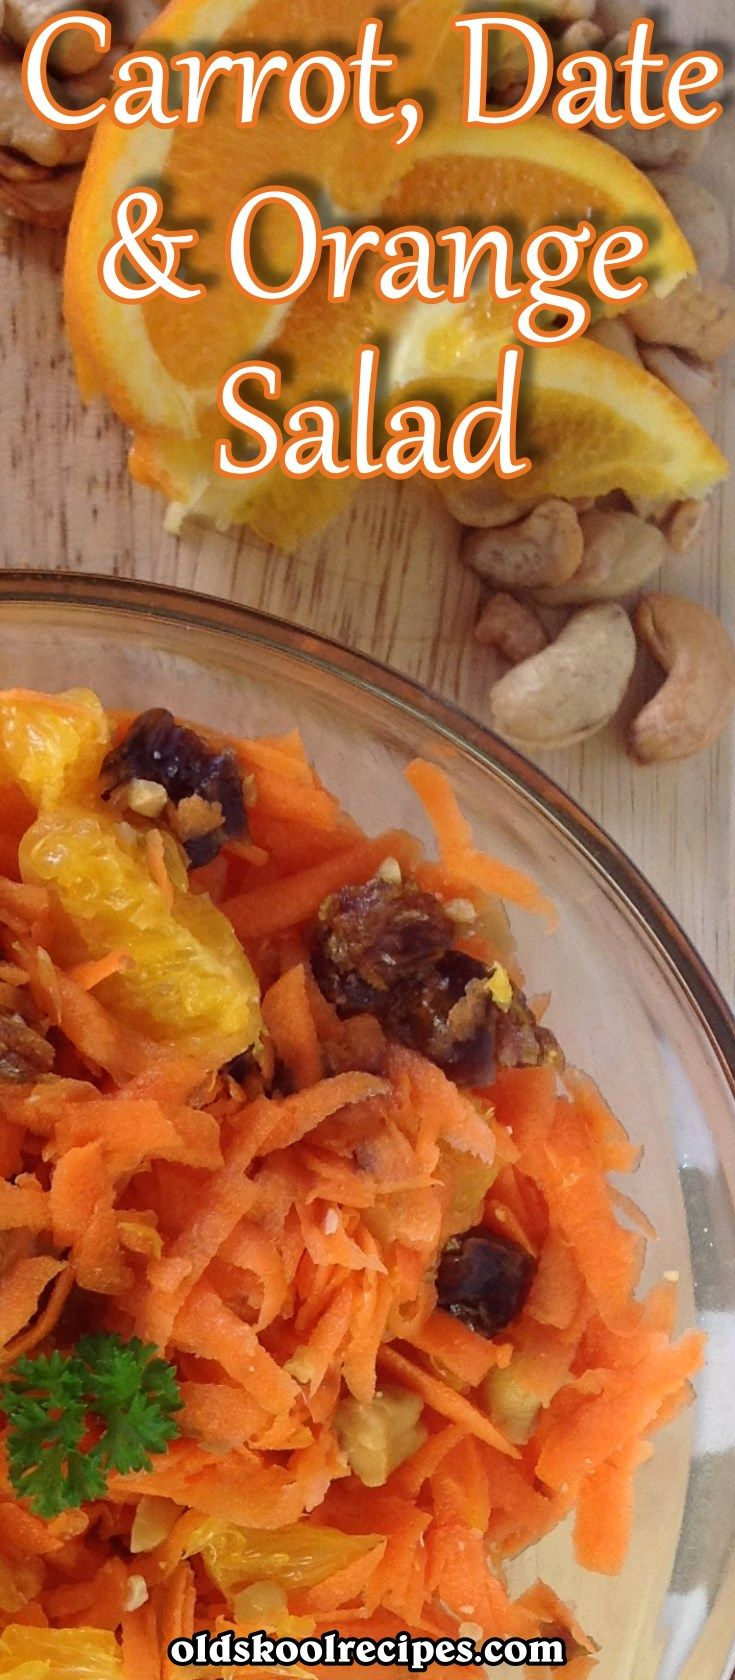 This is an easy and quick Carrot, Date and Orange Salad Recipe to make. What makes it even more special is that no cooking is required. Make this Carrot, Date and Orange salad with a difference for your next barbeque. I'm sure your family and friends will love it. The dates and nuts gives the carrots a different taste, so perfect for those long summer days.